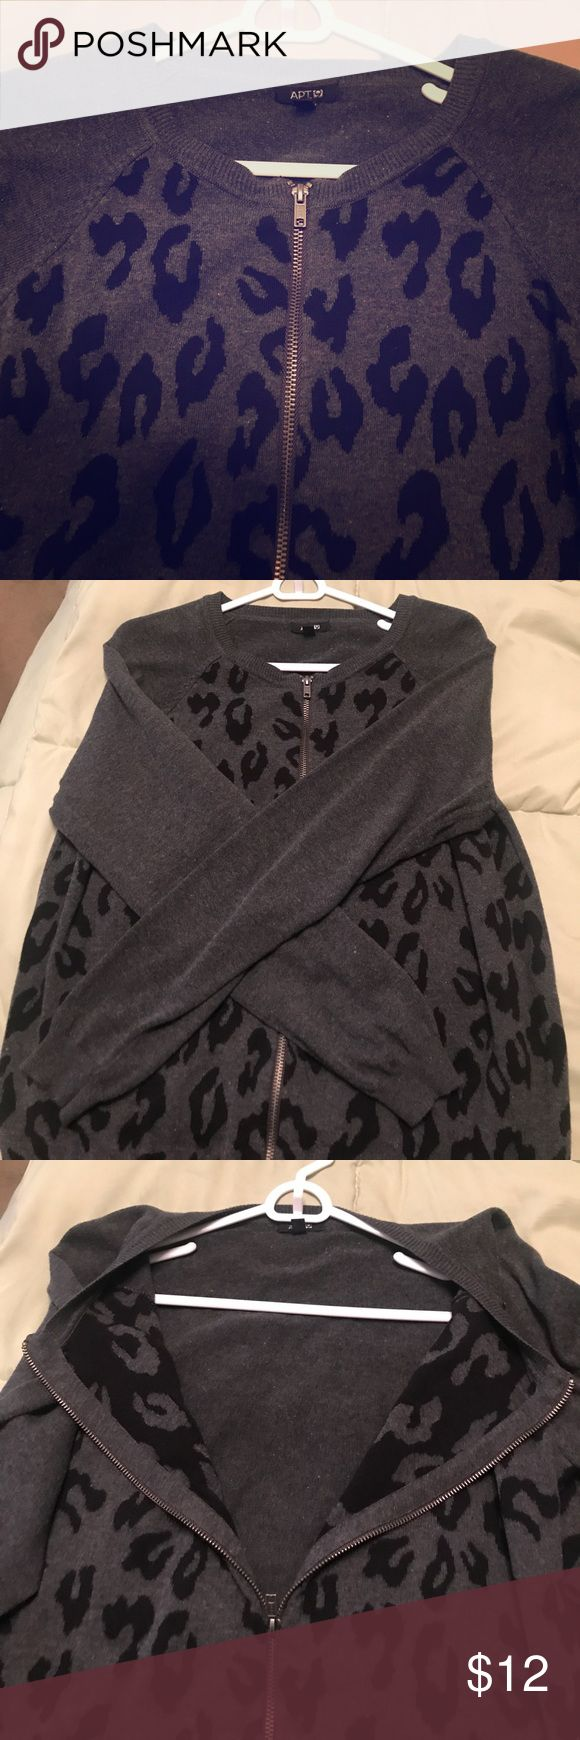 Apt. 9 Grey & Black Zip Leopard Print Sweater! Apt. 9 Grey & Black Zip Leopard Print Sweater! Full zip open/close. Silver zipper. Long sleeve. Worn a handful of times. No stains or tears. Size Women's XL. Soft and perfect for cooler weather. Dress up or down! Print is only on front of sweater. Not sleeves or back! Apt.9 Sweaters Cardigans